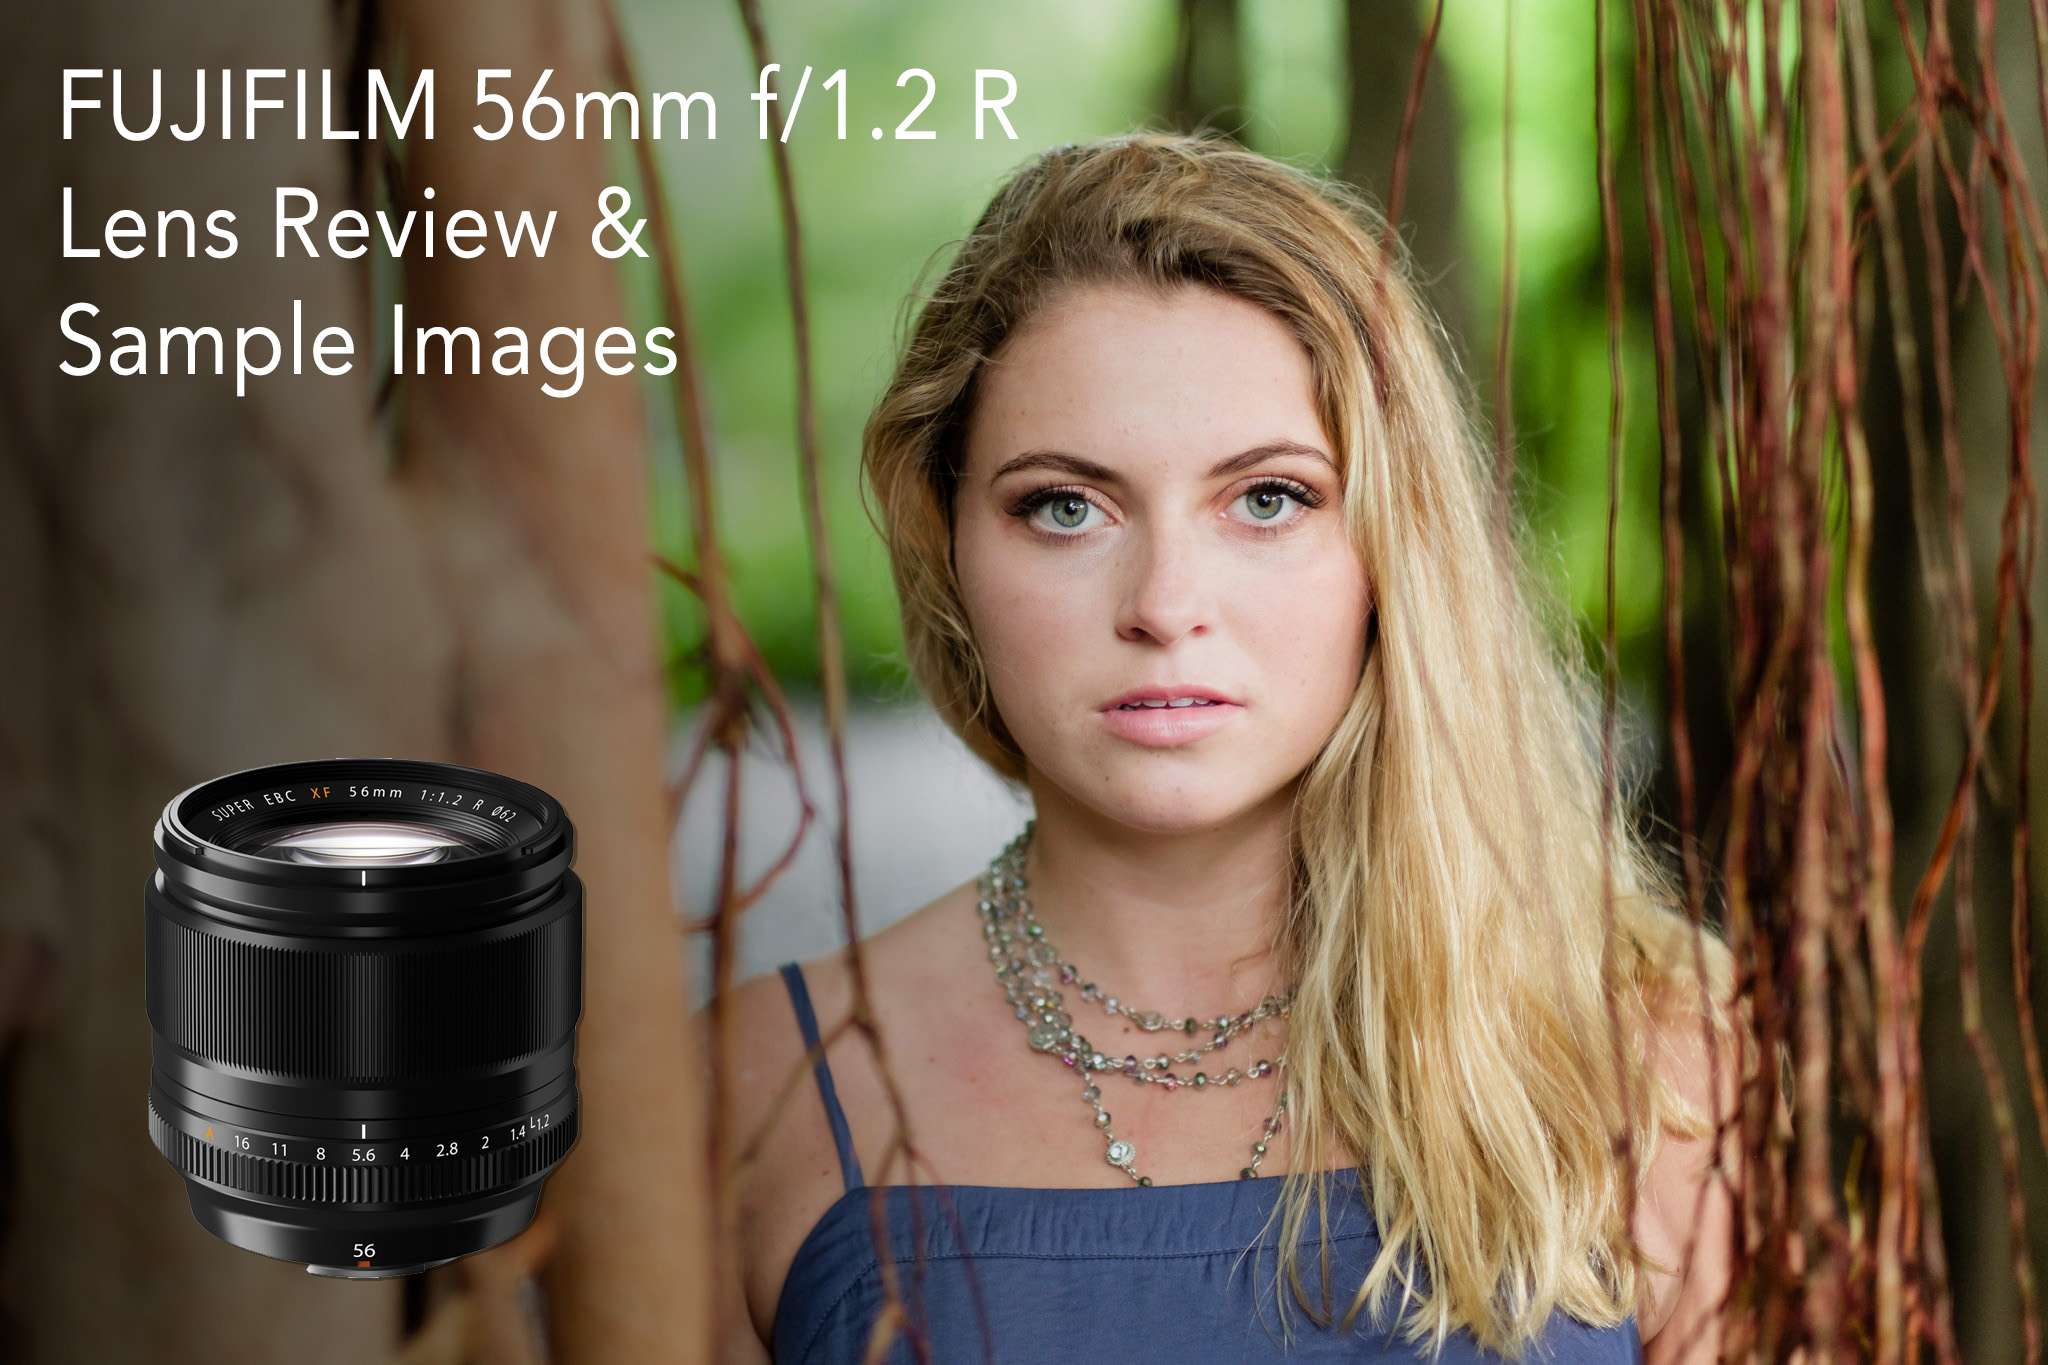 Fujifilm 56mm f/1 2 R Lens Review in Photo Insider Blog at